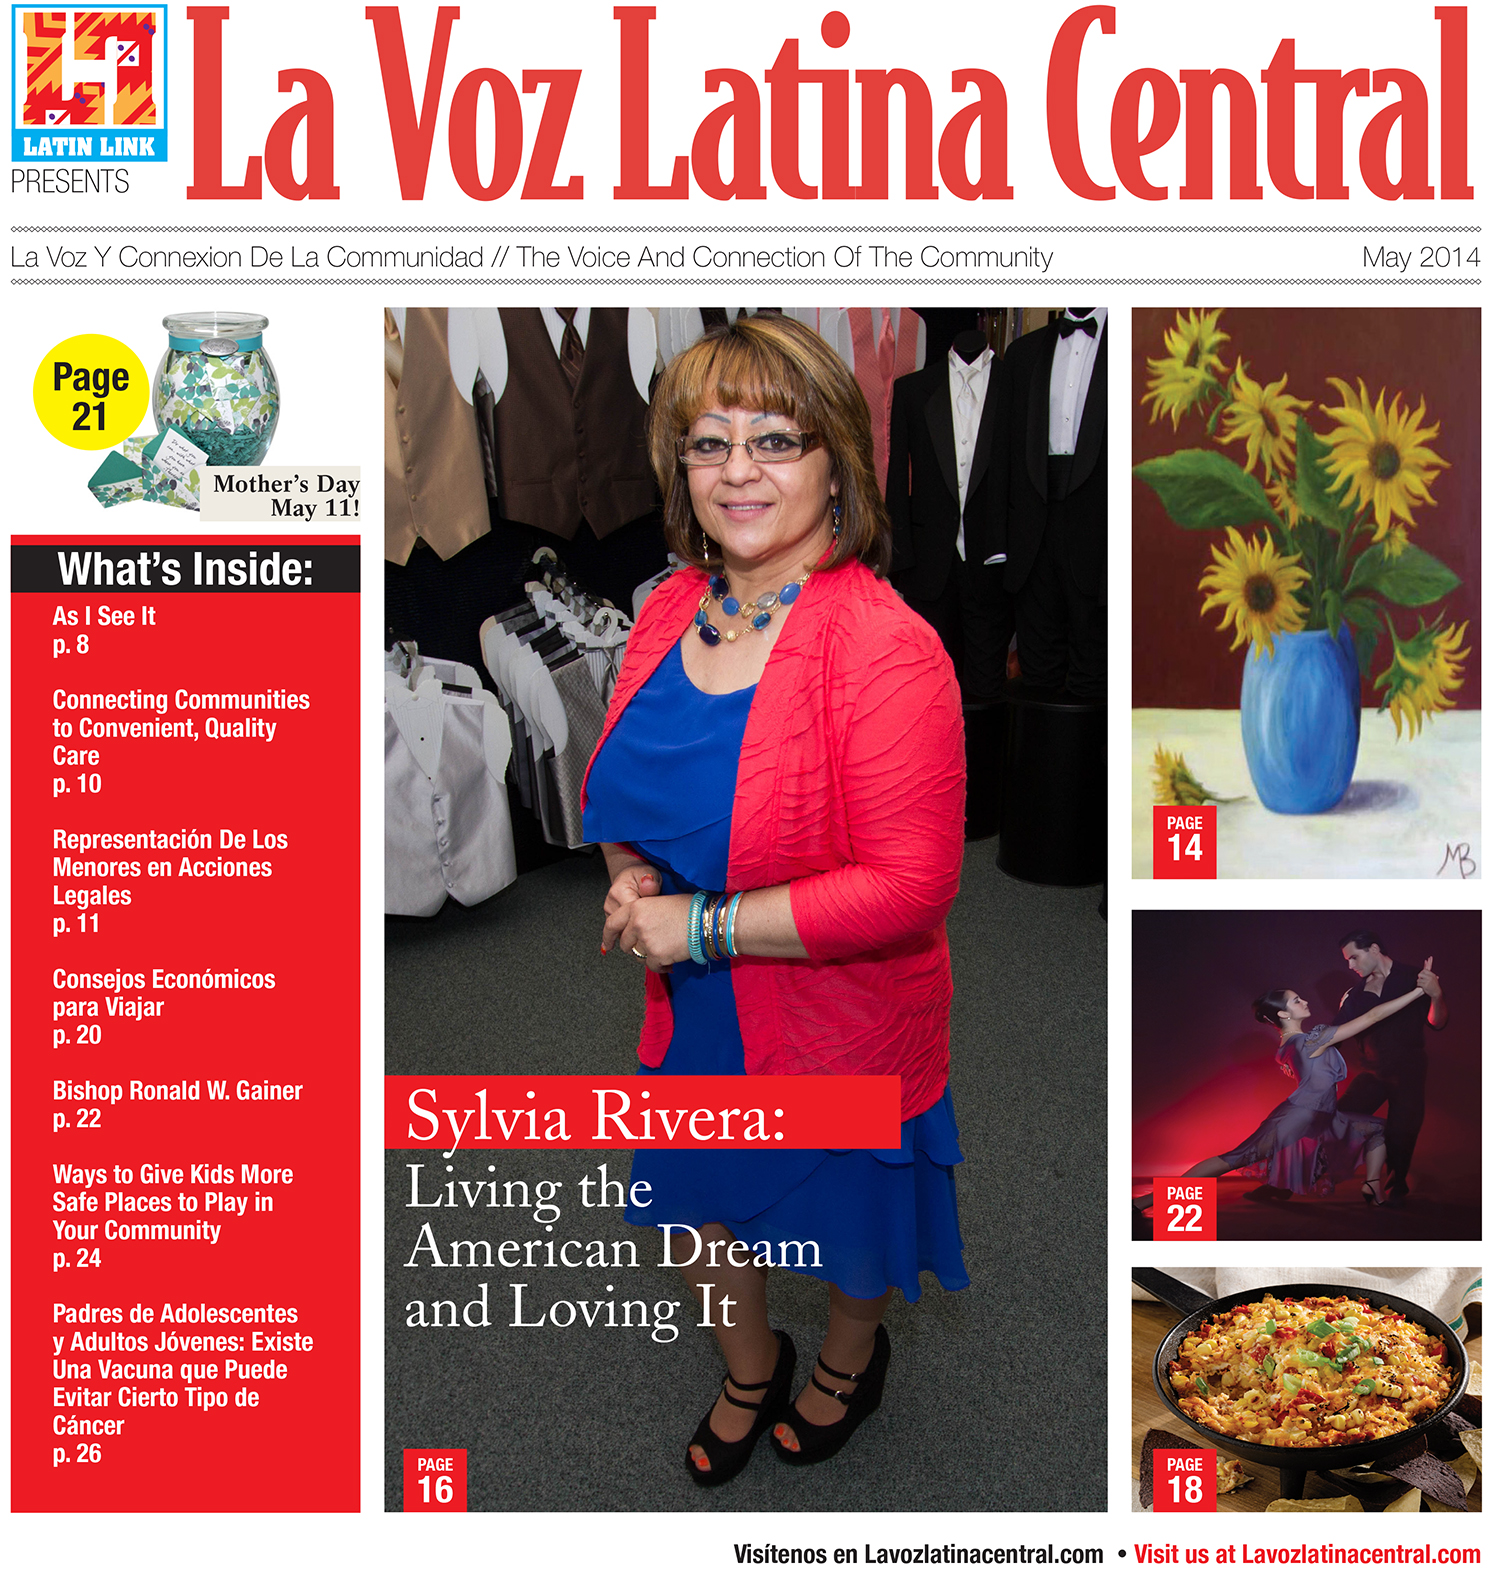 La Voz Latina Central Magazine Volume V